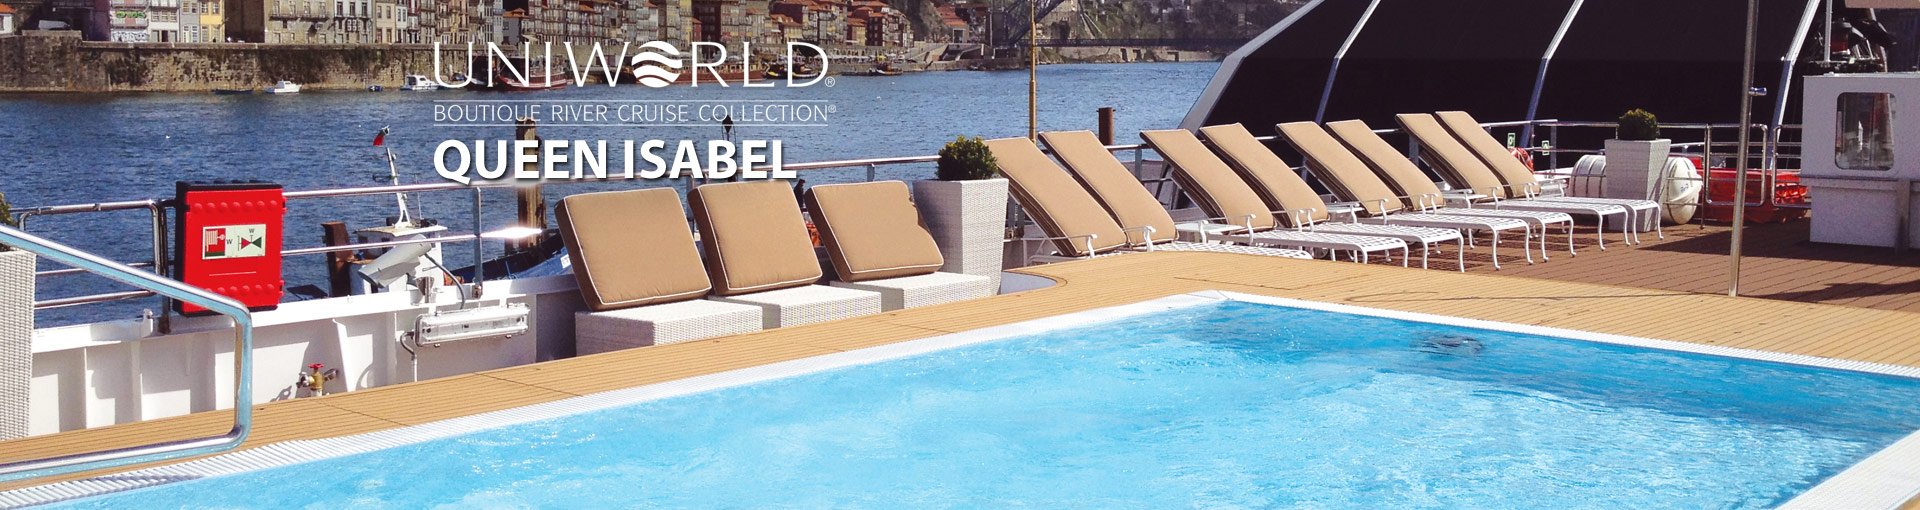 Uniworld River Cruises Queen Isabel river cruise s